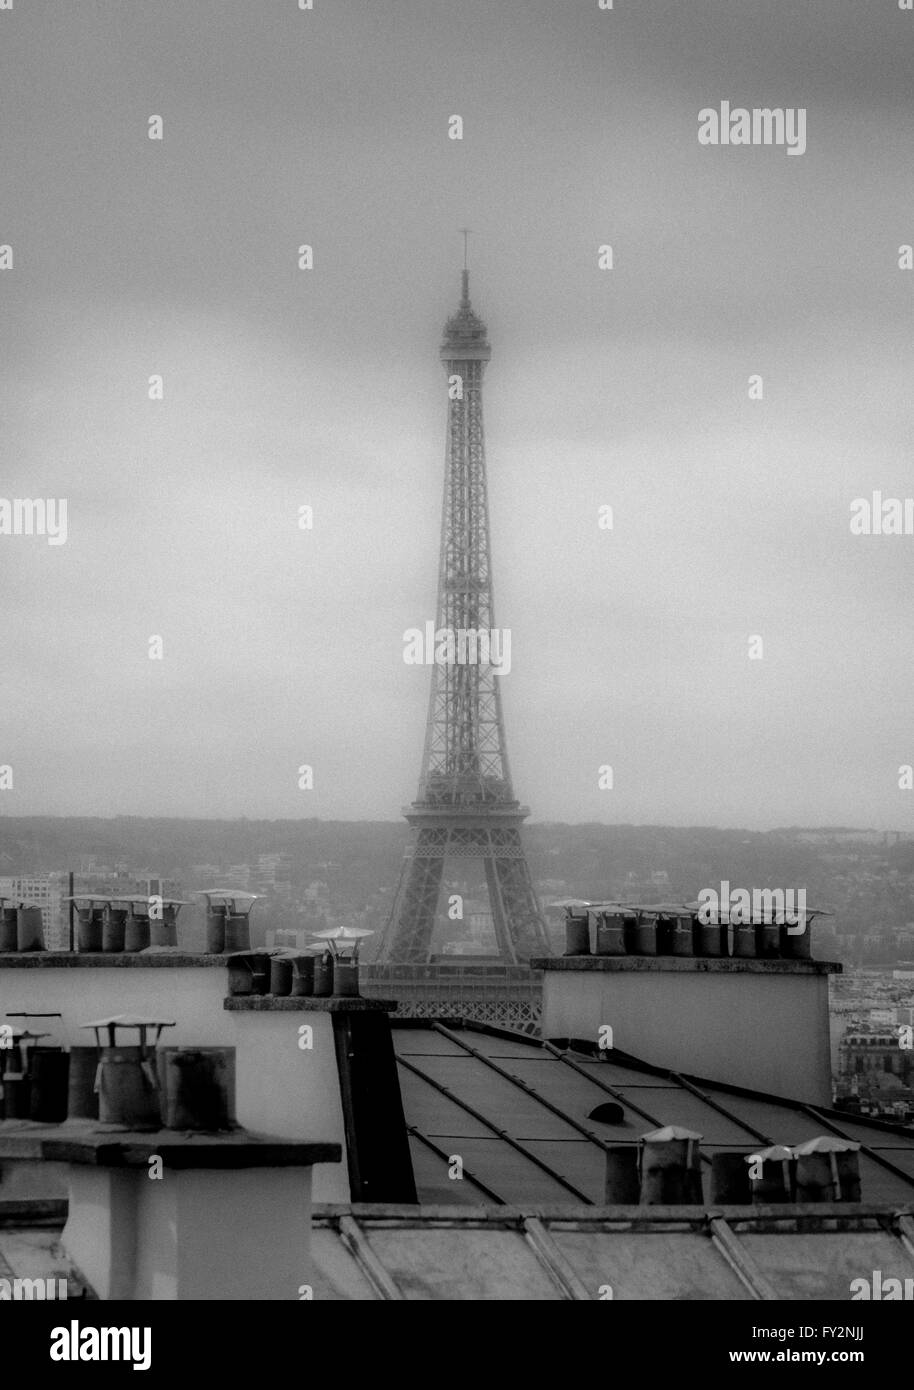 Chimney pots and rooftops with Eiffel Tower in background, Paris France. - Stock Image